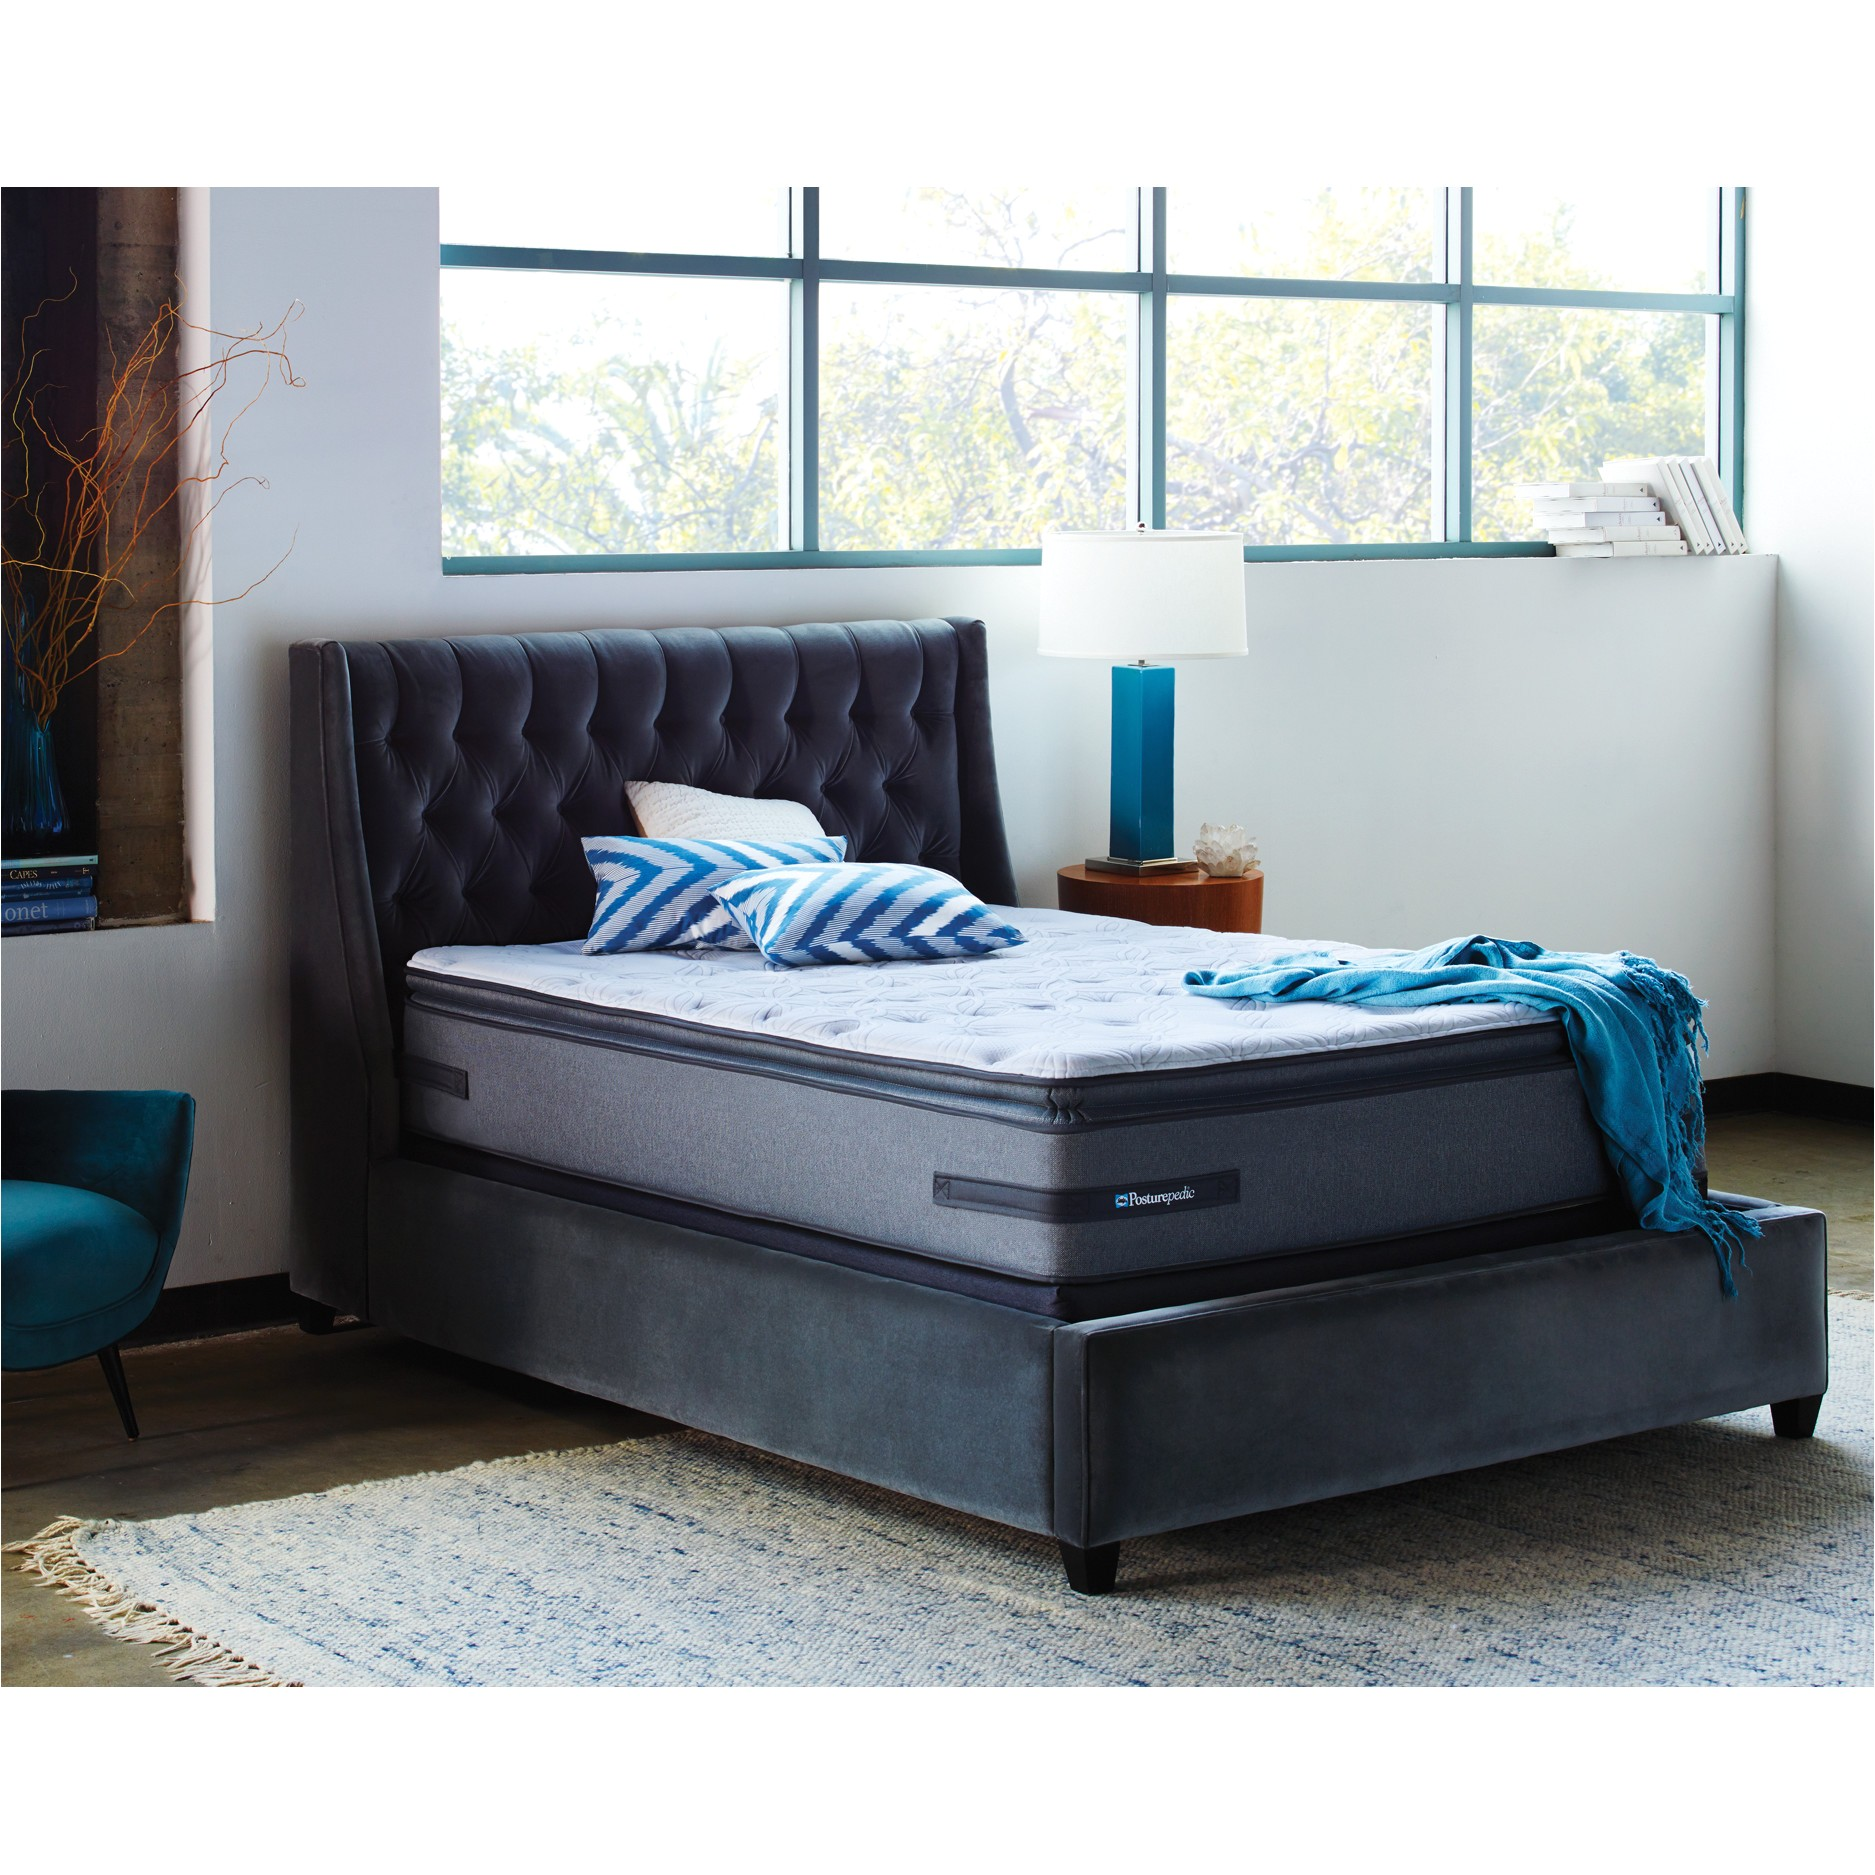 posturepedic 25c2 25ae plus 14 plush mattress 512593 scm1149